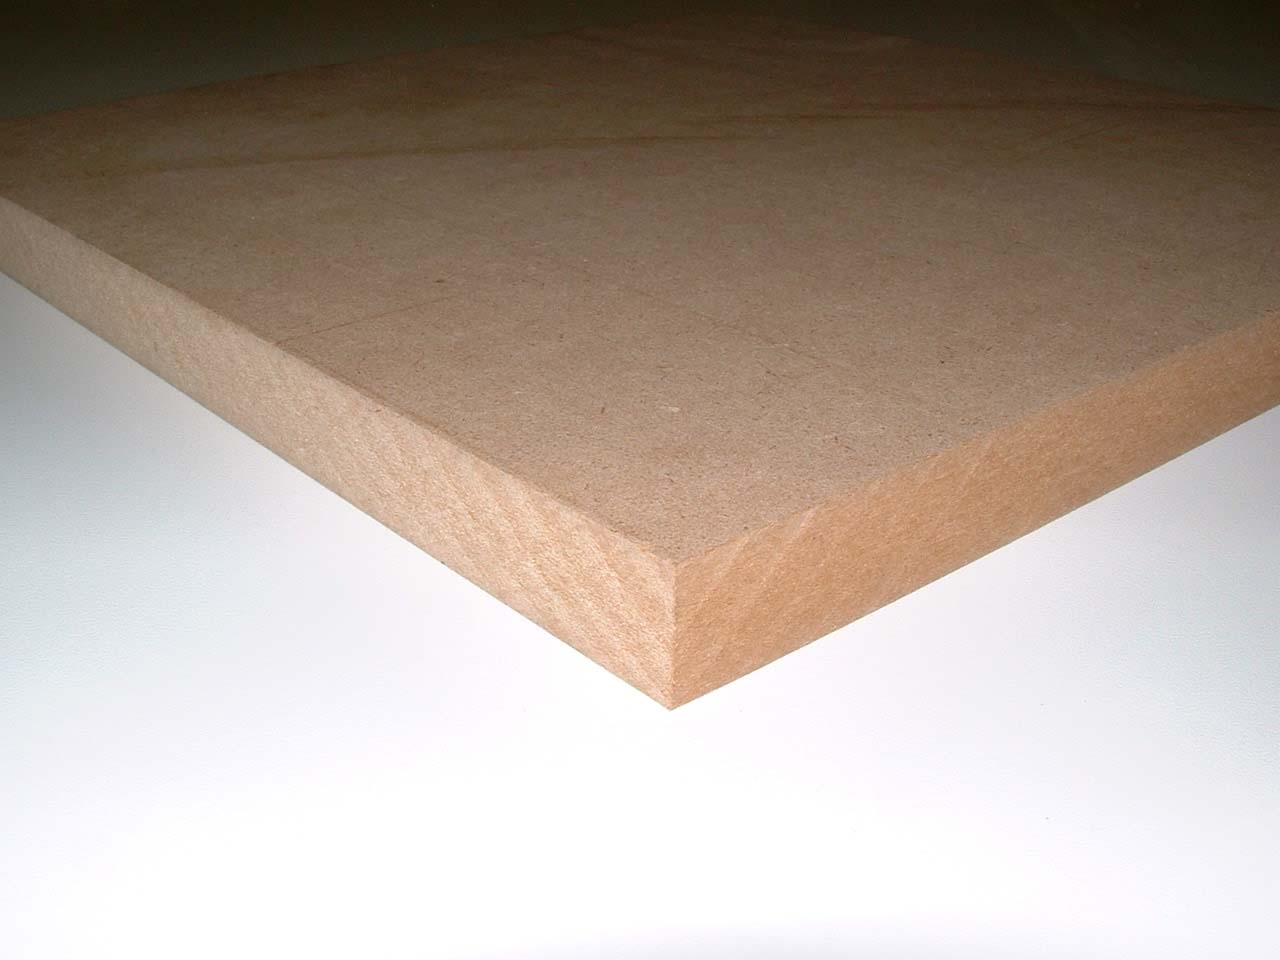 Weight Of Lumber Plywood ~ Product gallery